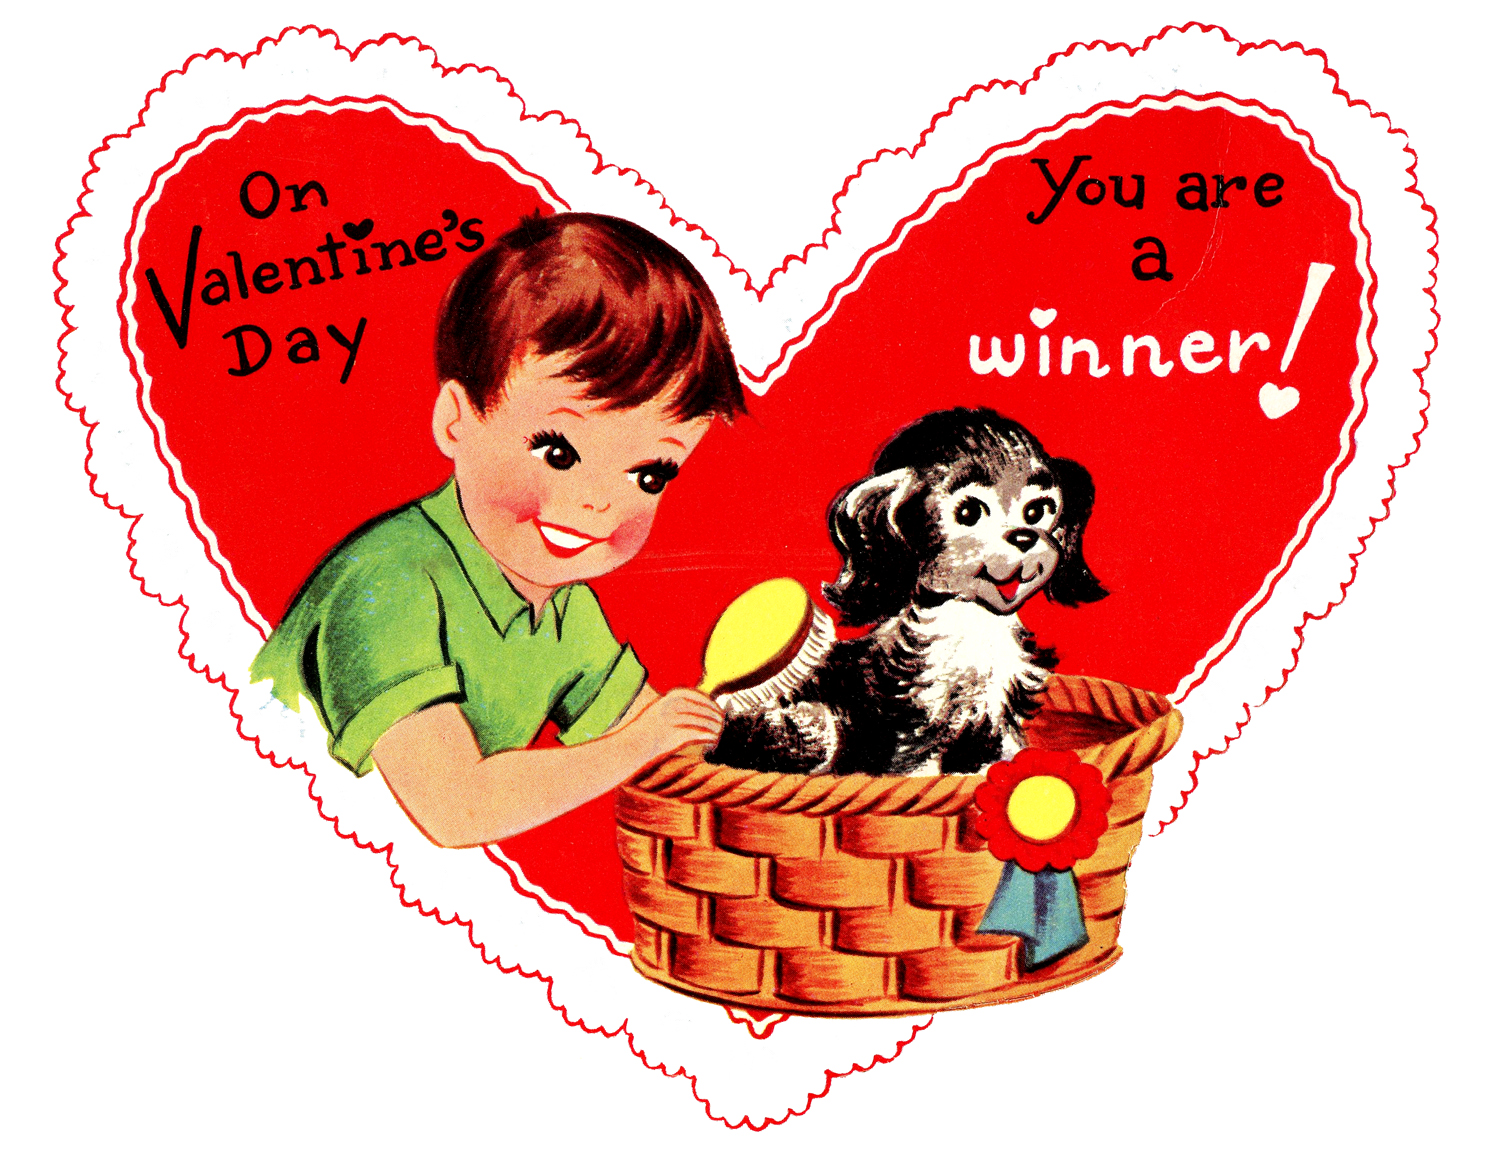 Retro Valentines Graphic  Cute Boy with Pup  The Graphics Fairy